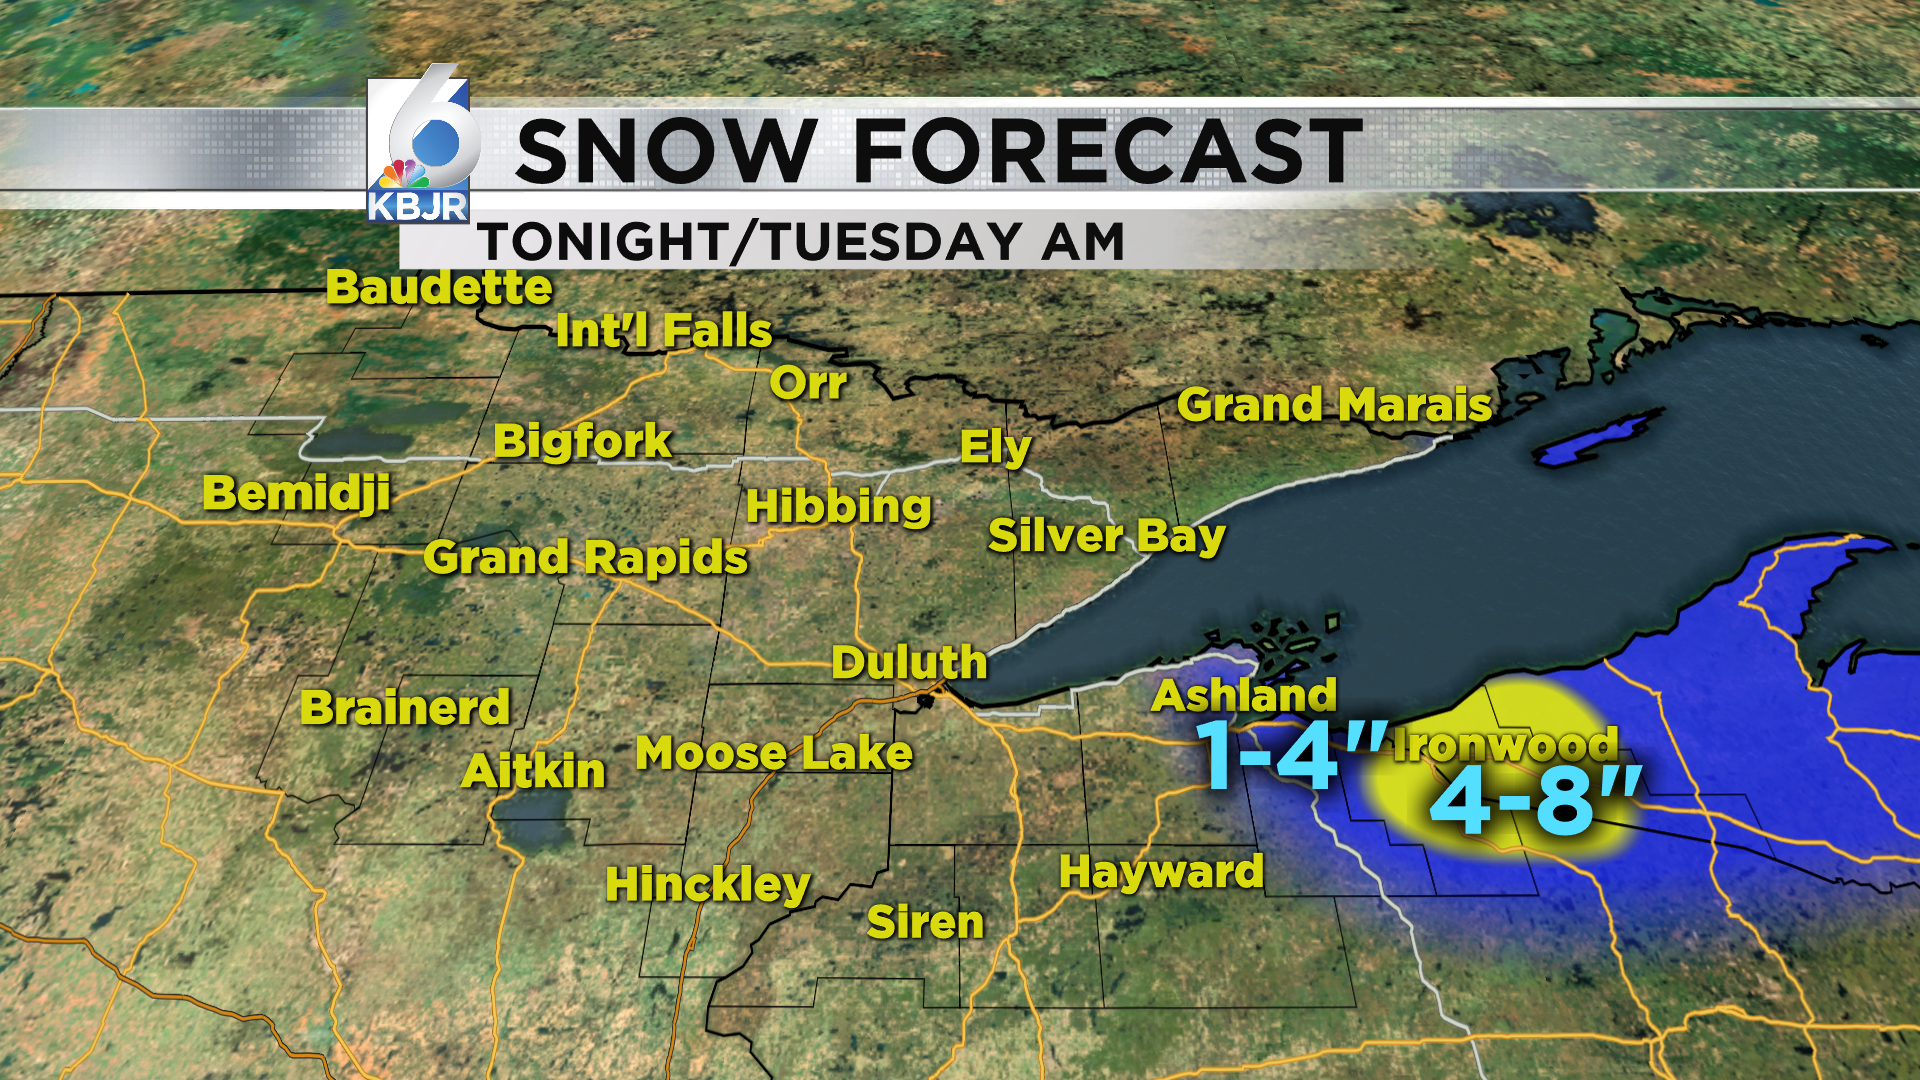 Lake Effect snow continues for South Shore.